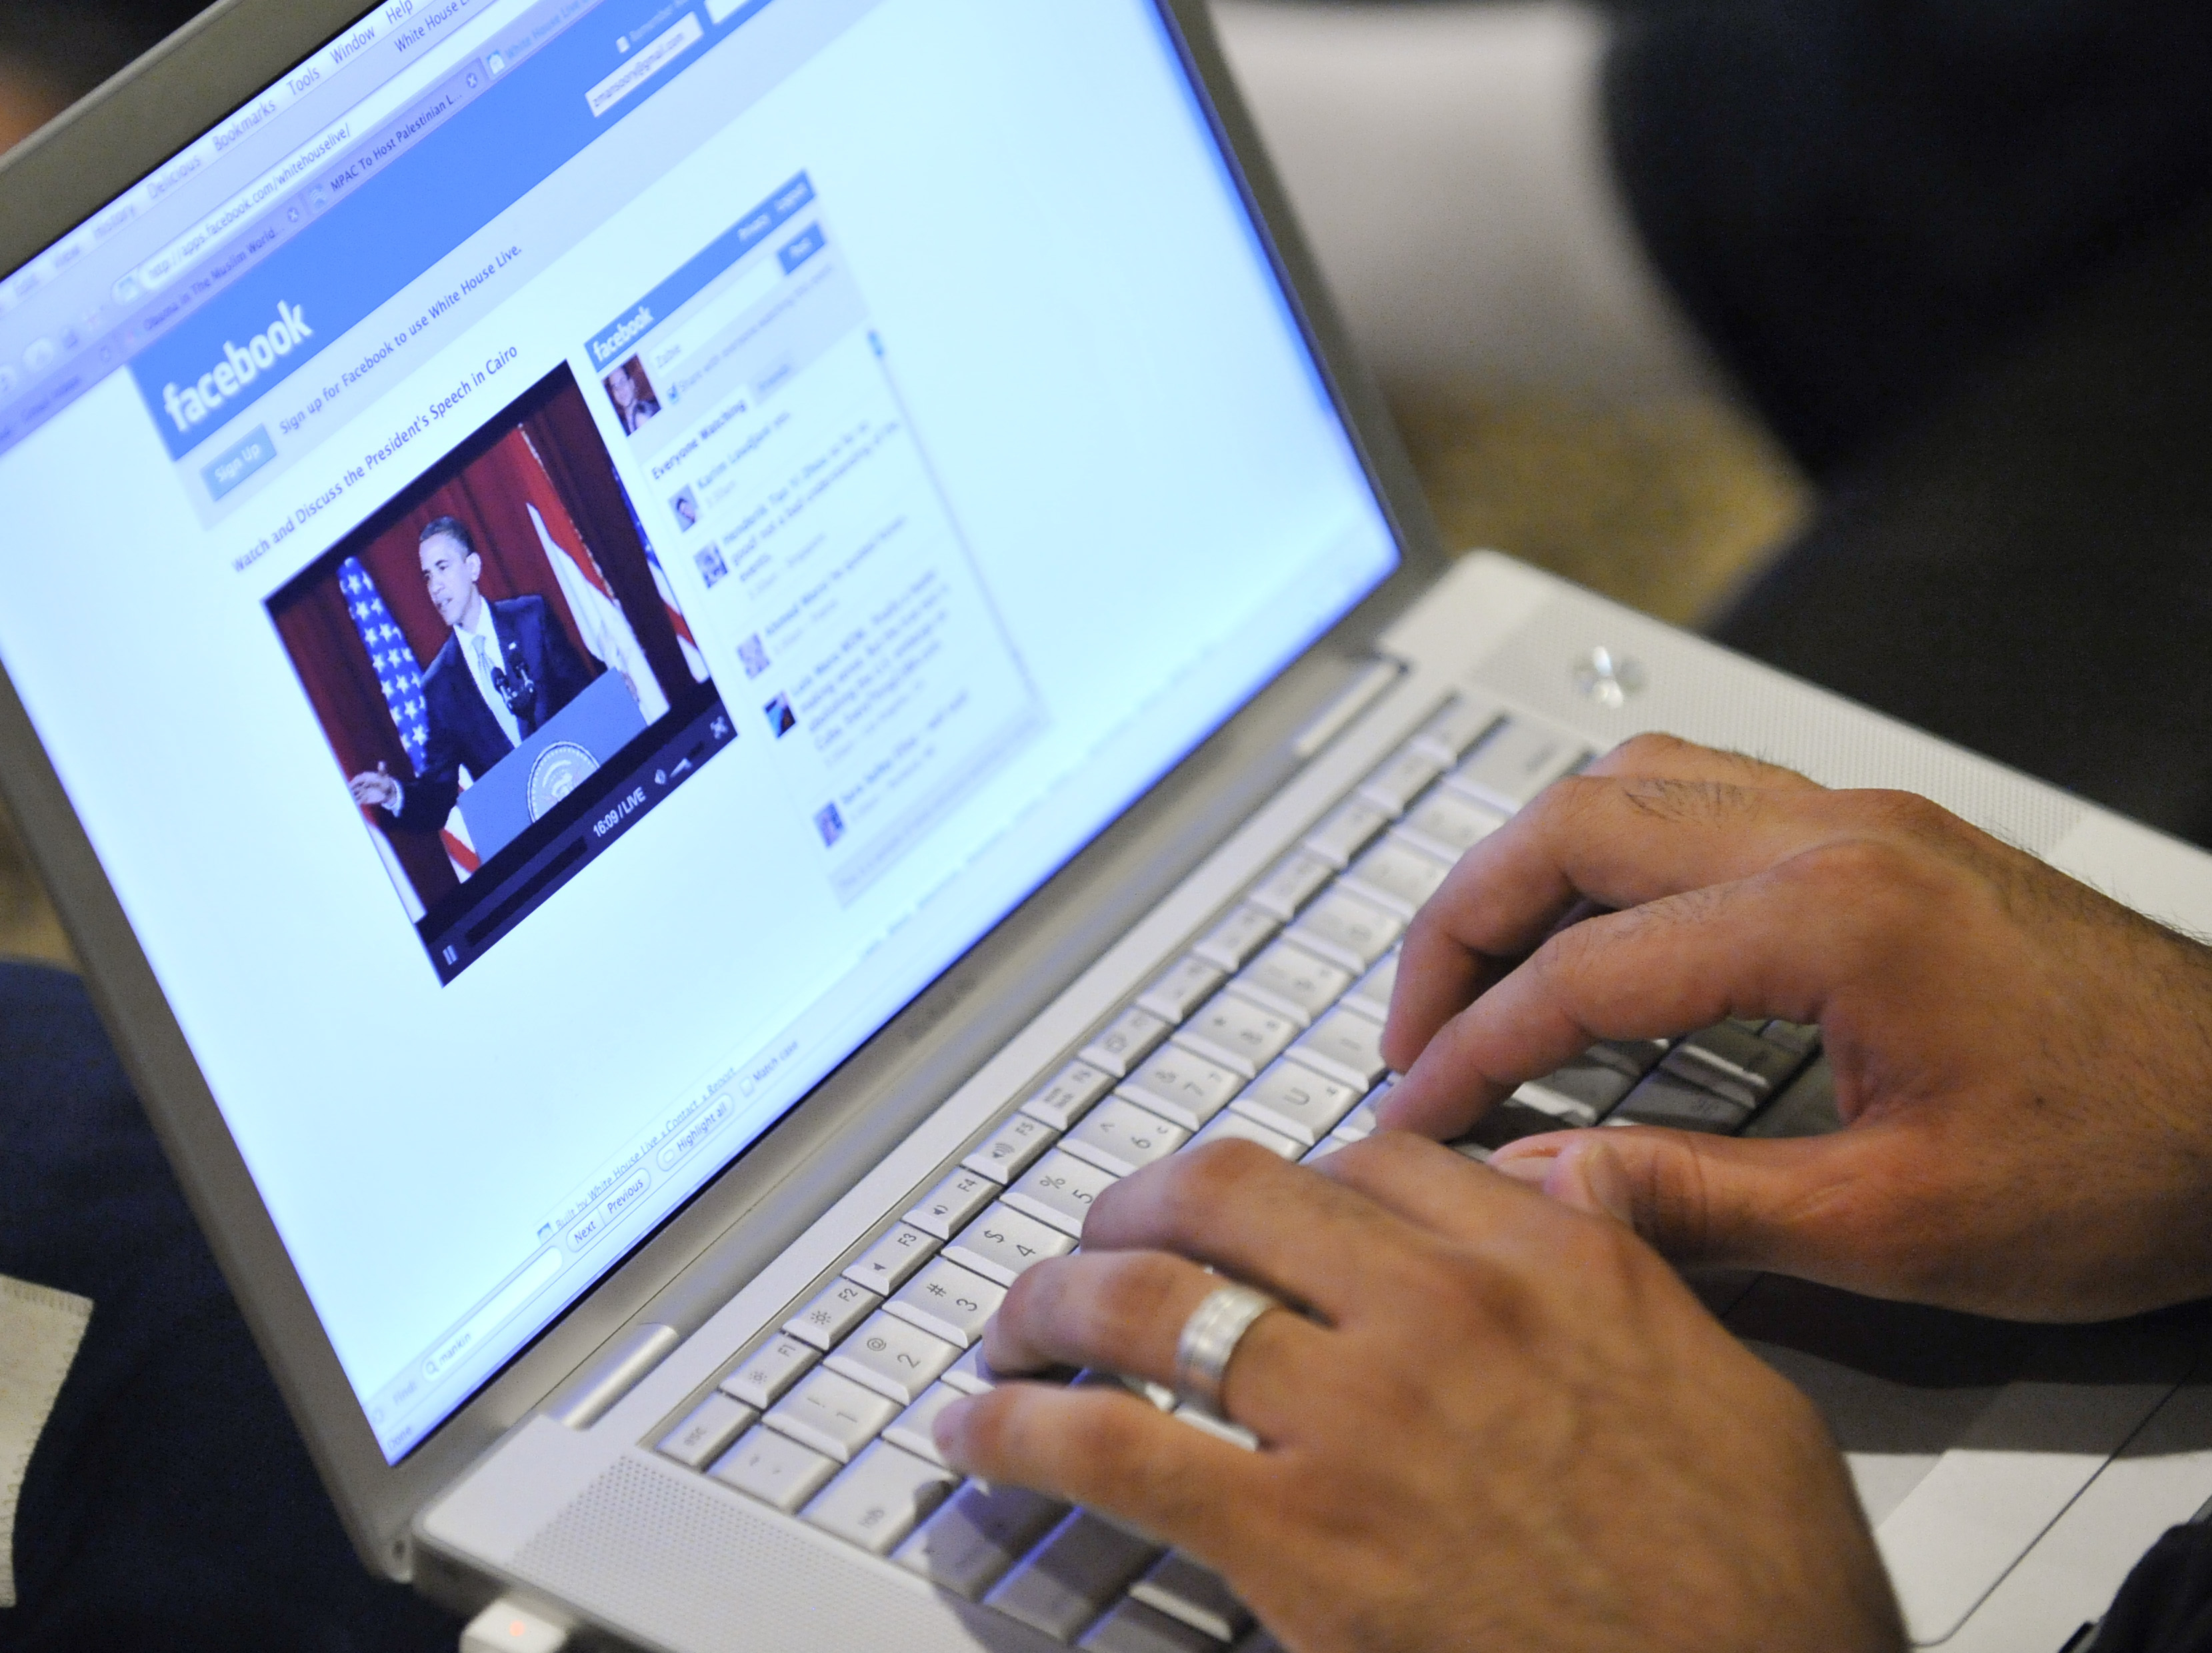 Zabie Mansoory monitors a Facebook discussion board while watching President Barack Obama's televised coverage of President Barack Obama's speech from Cairo University, in the Sylmar area of Los Angeles, early Thursday June 4, 2009.